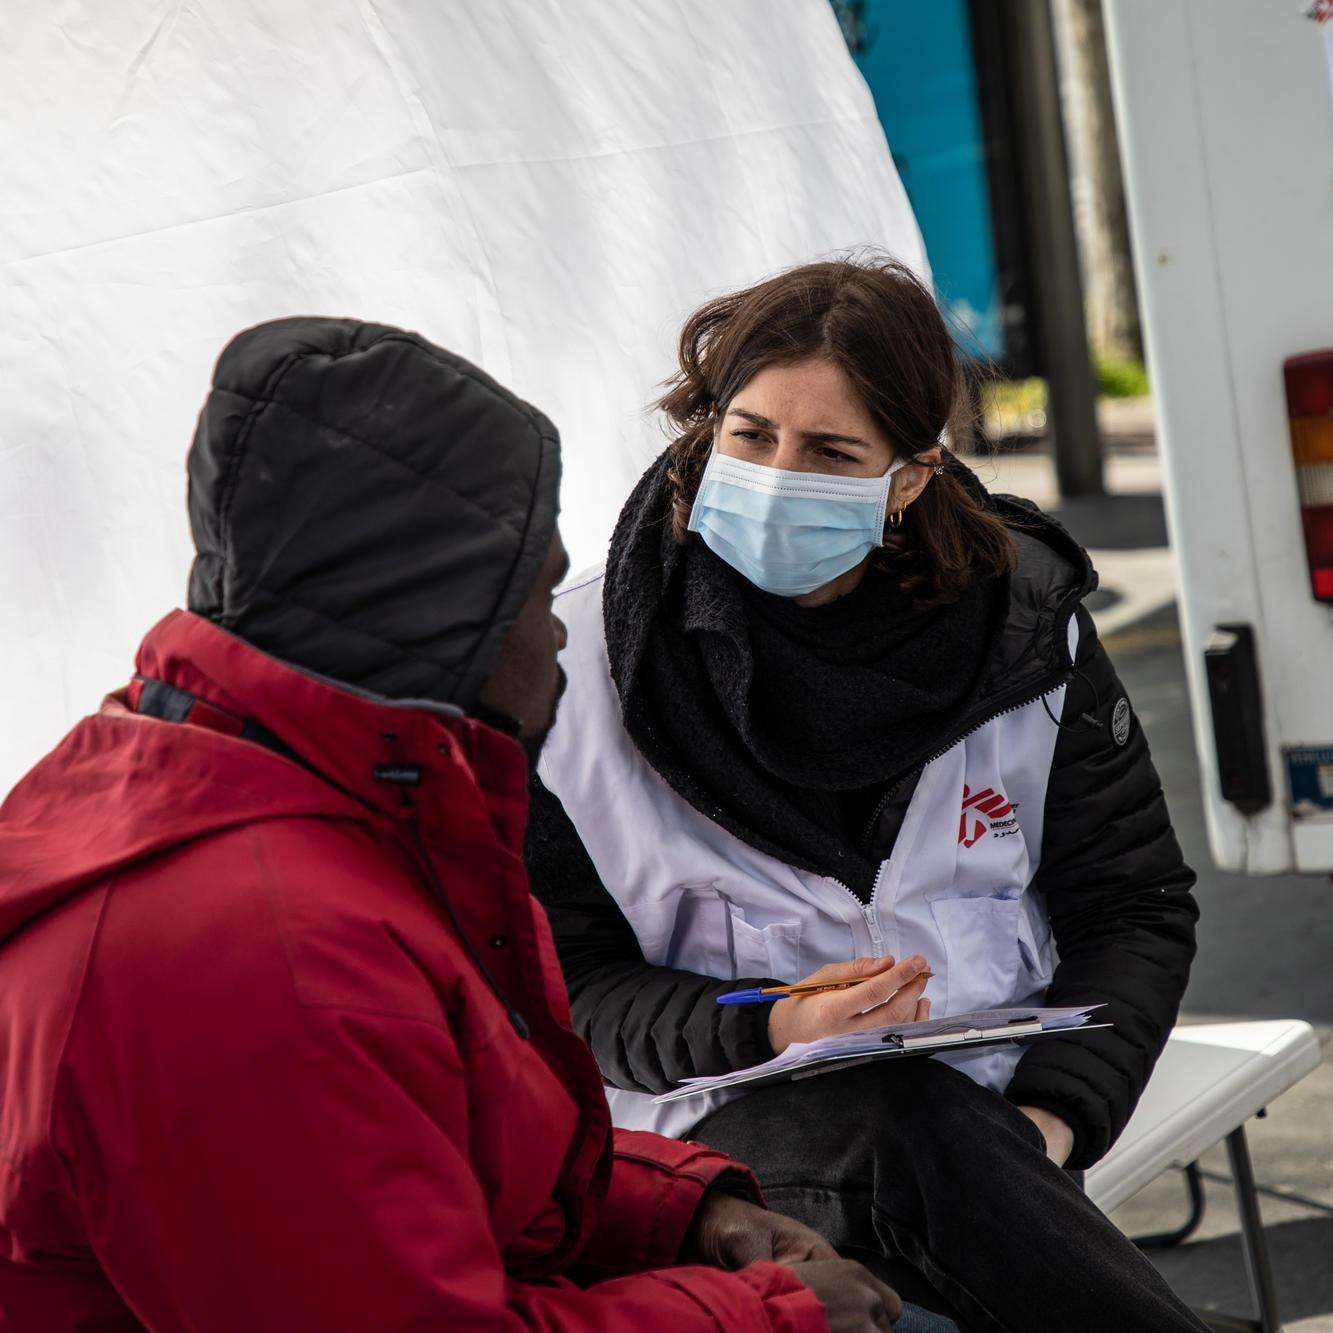 Coronavirus: MSF's mobile clinic for vulnerable groups